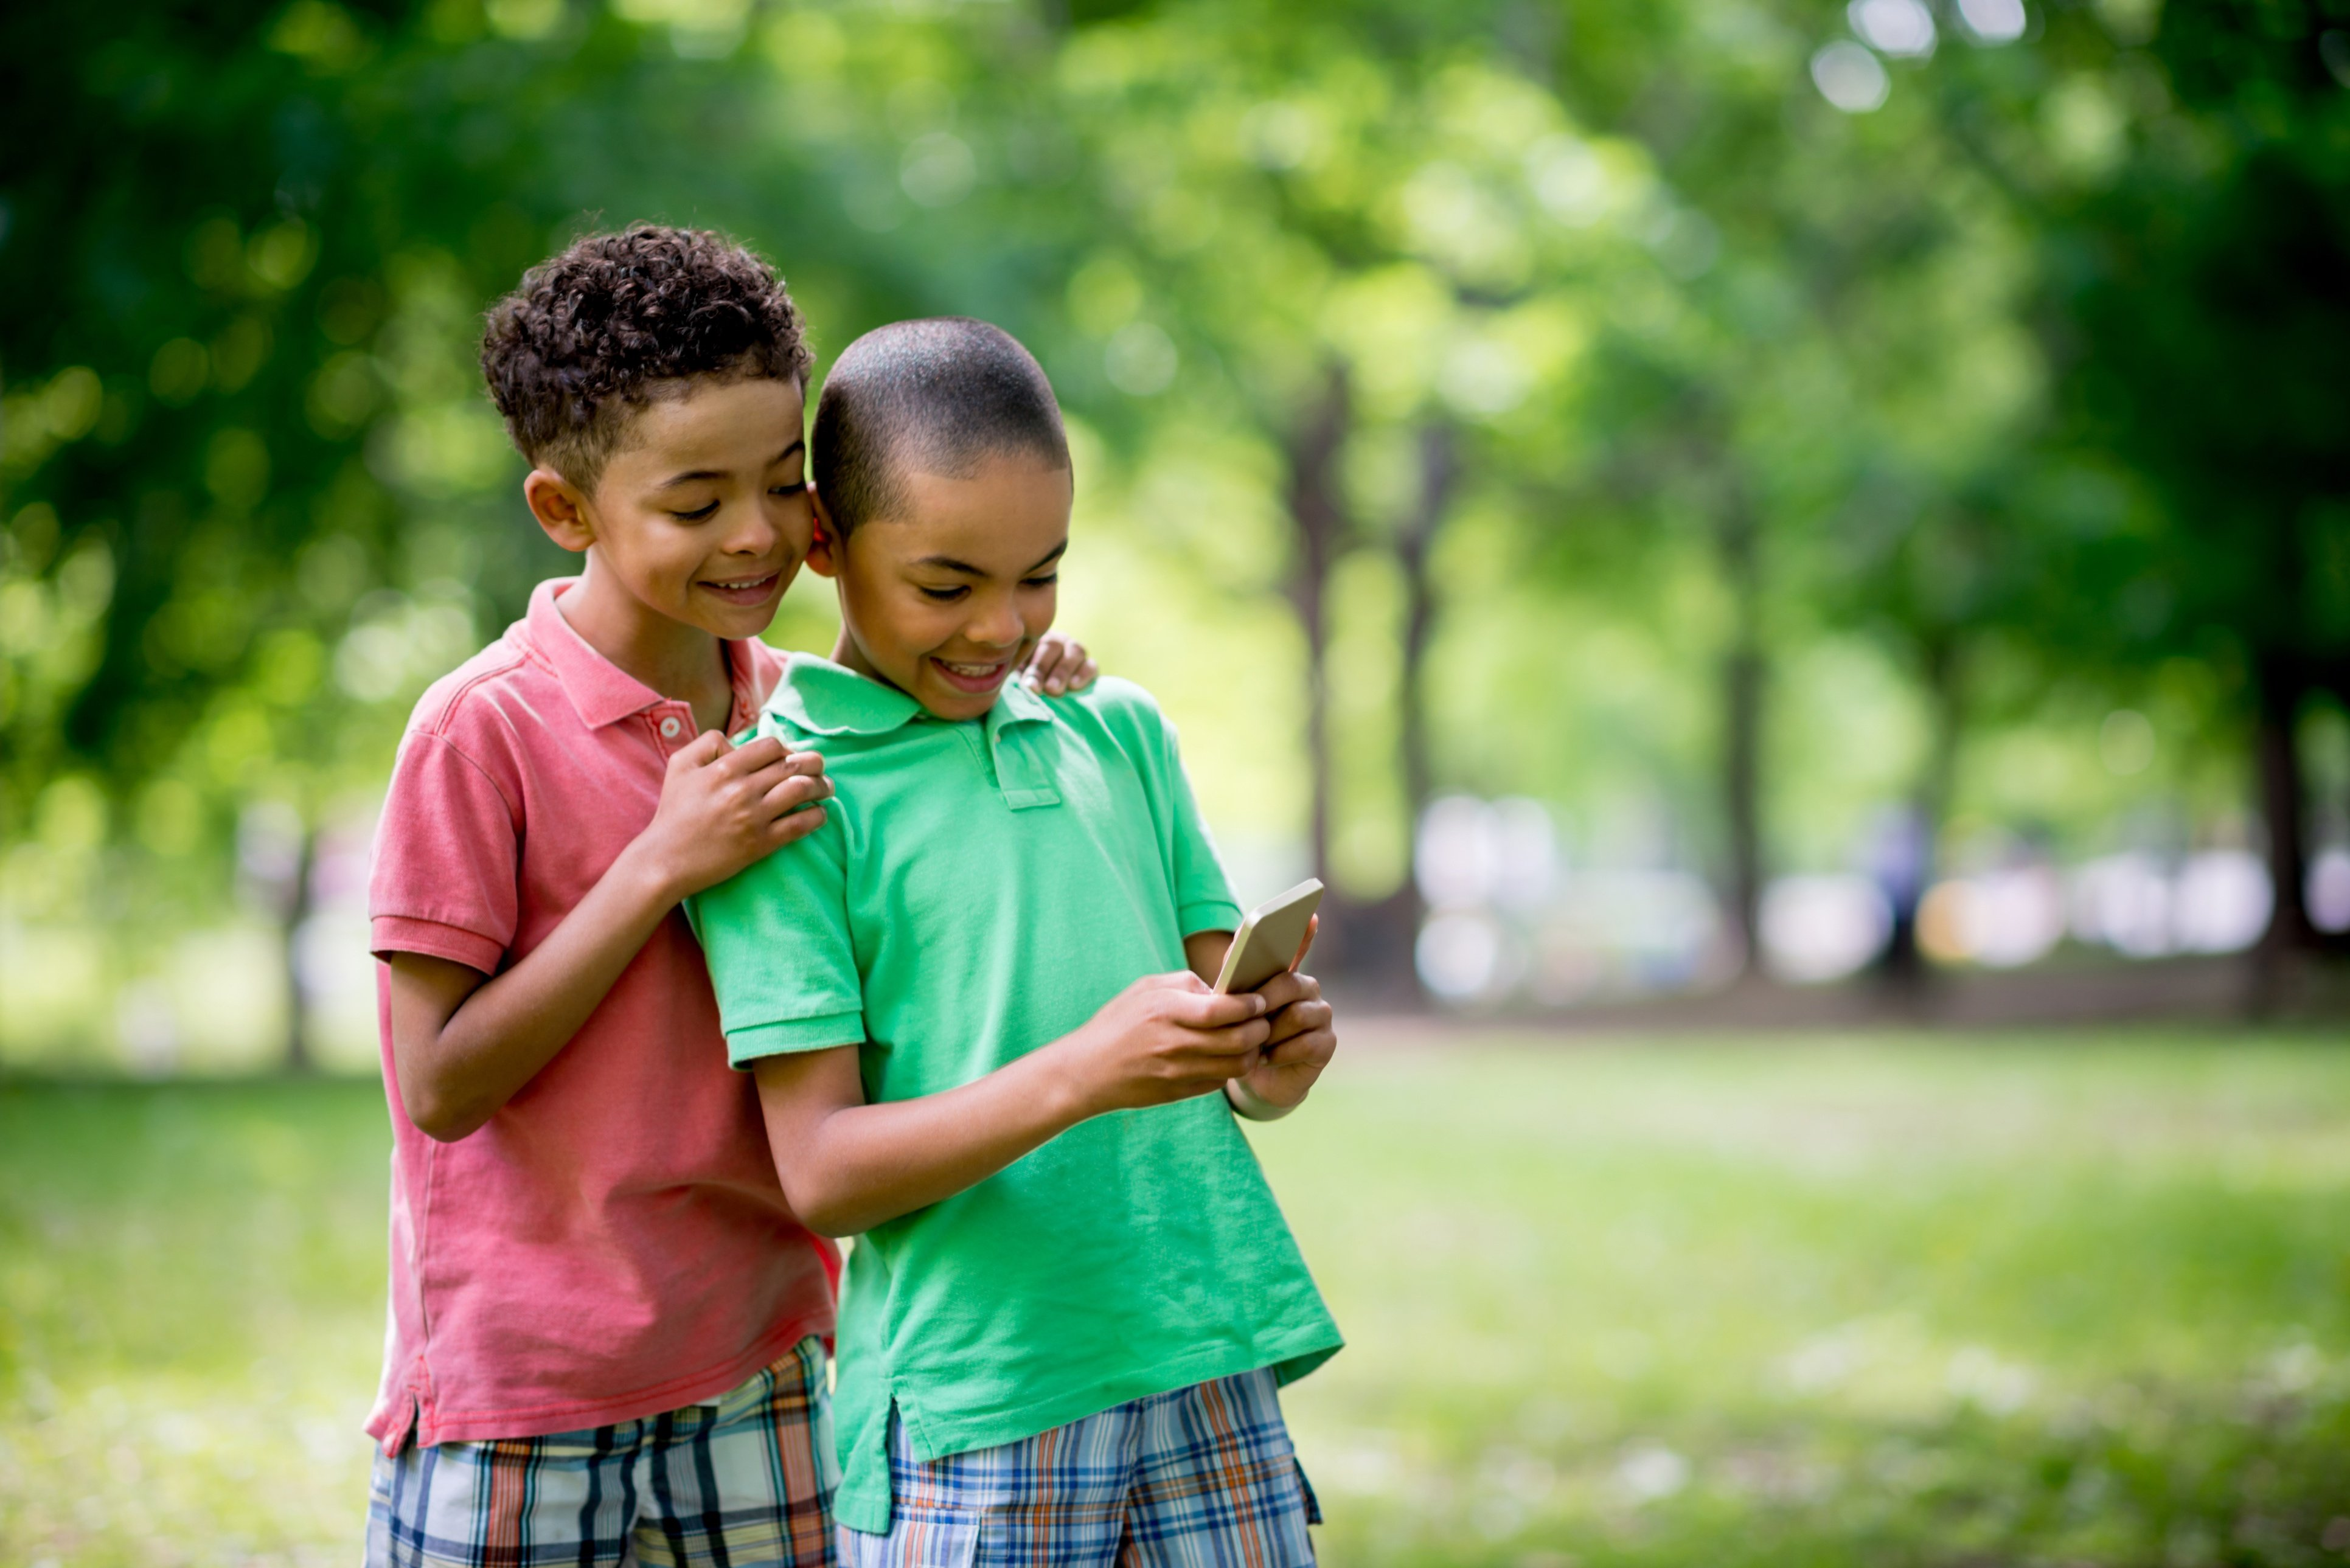 PRIVO Kids Digital Privacy